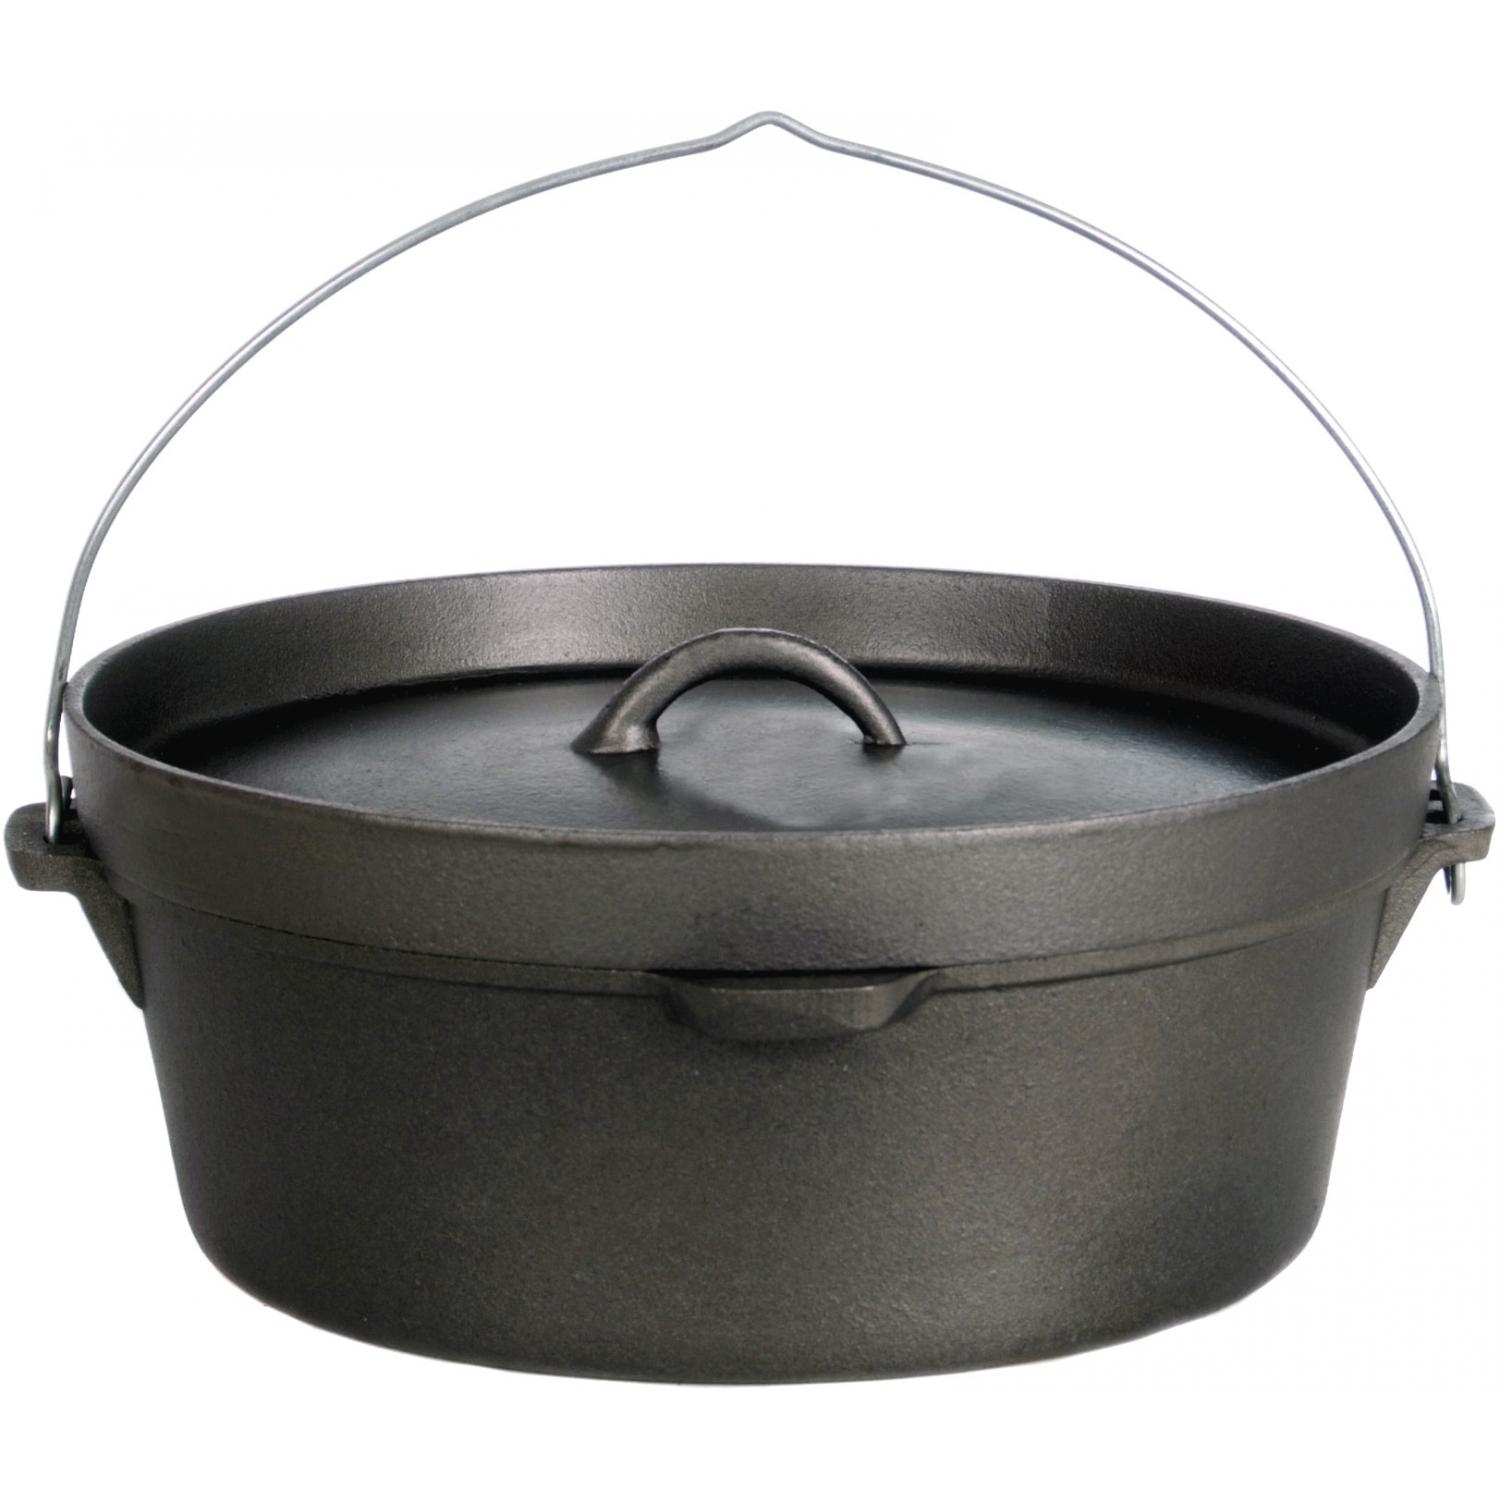 Get Cajun Cookware Dutch Ovens 1 Quart Cast Iron Dutch